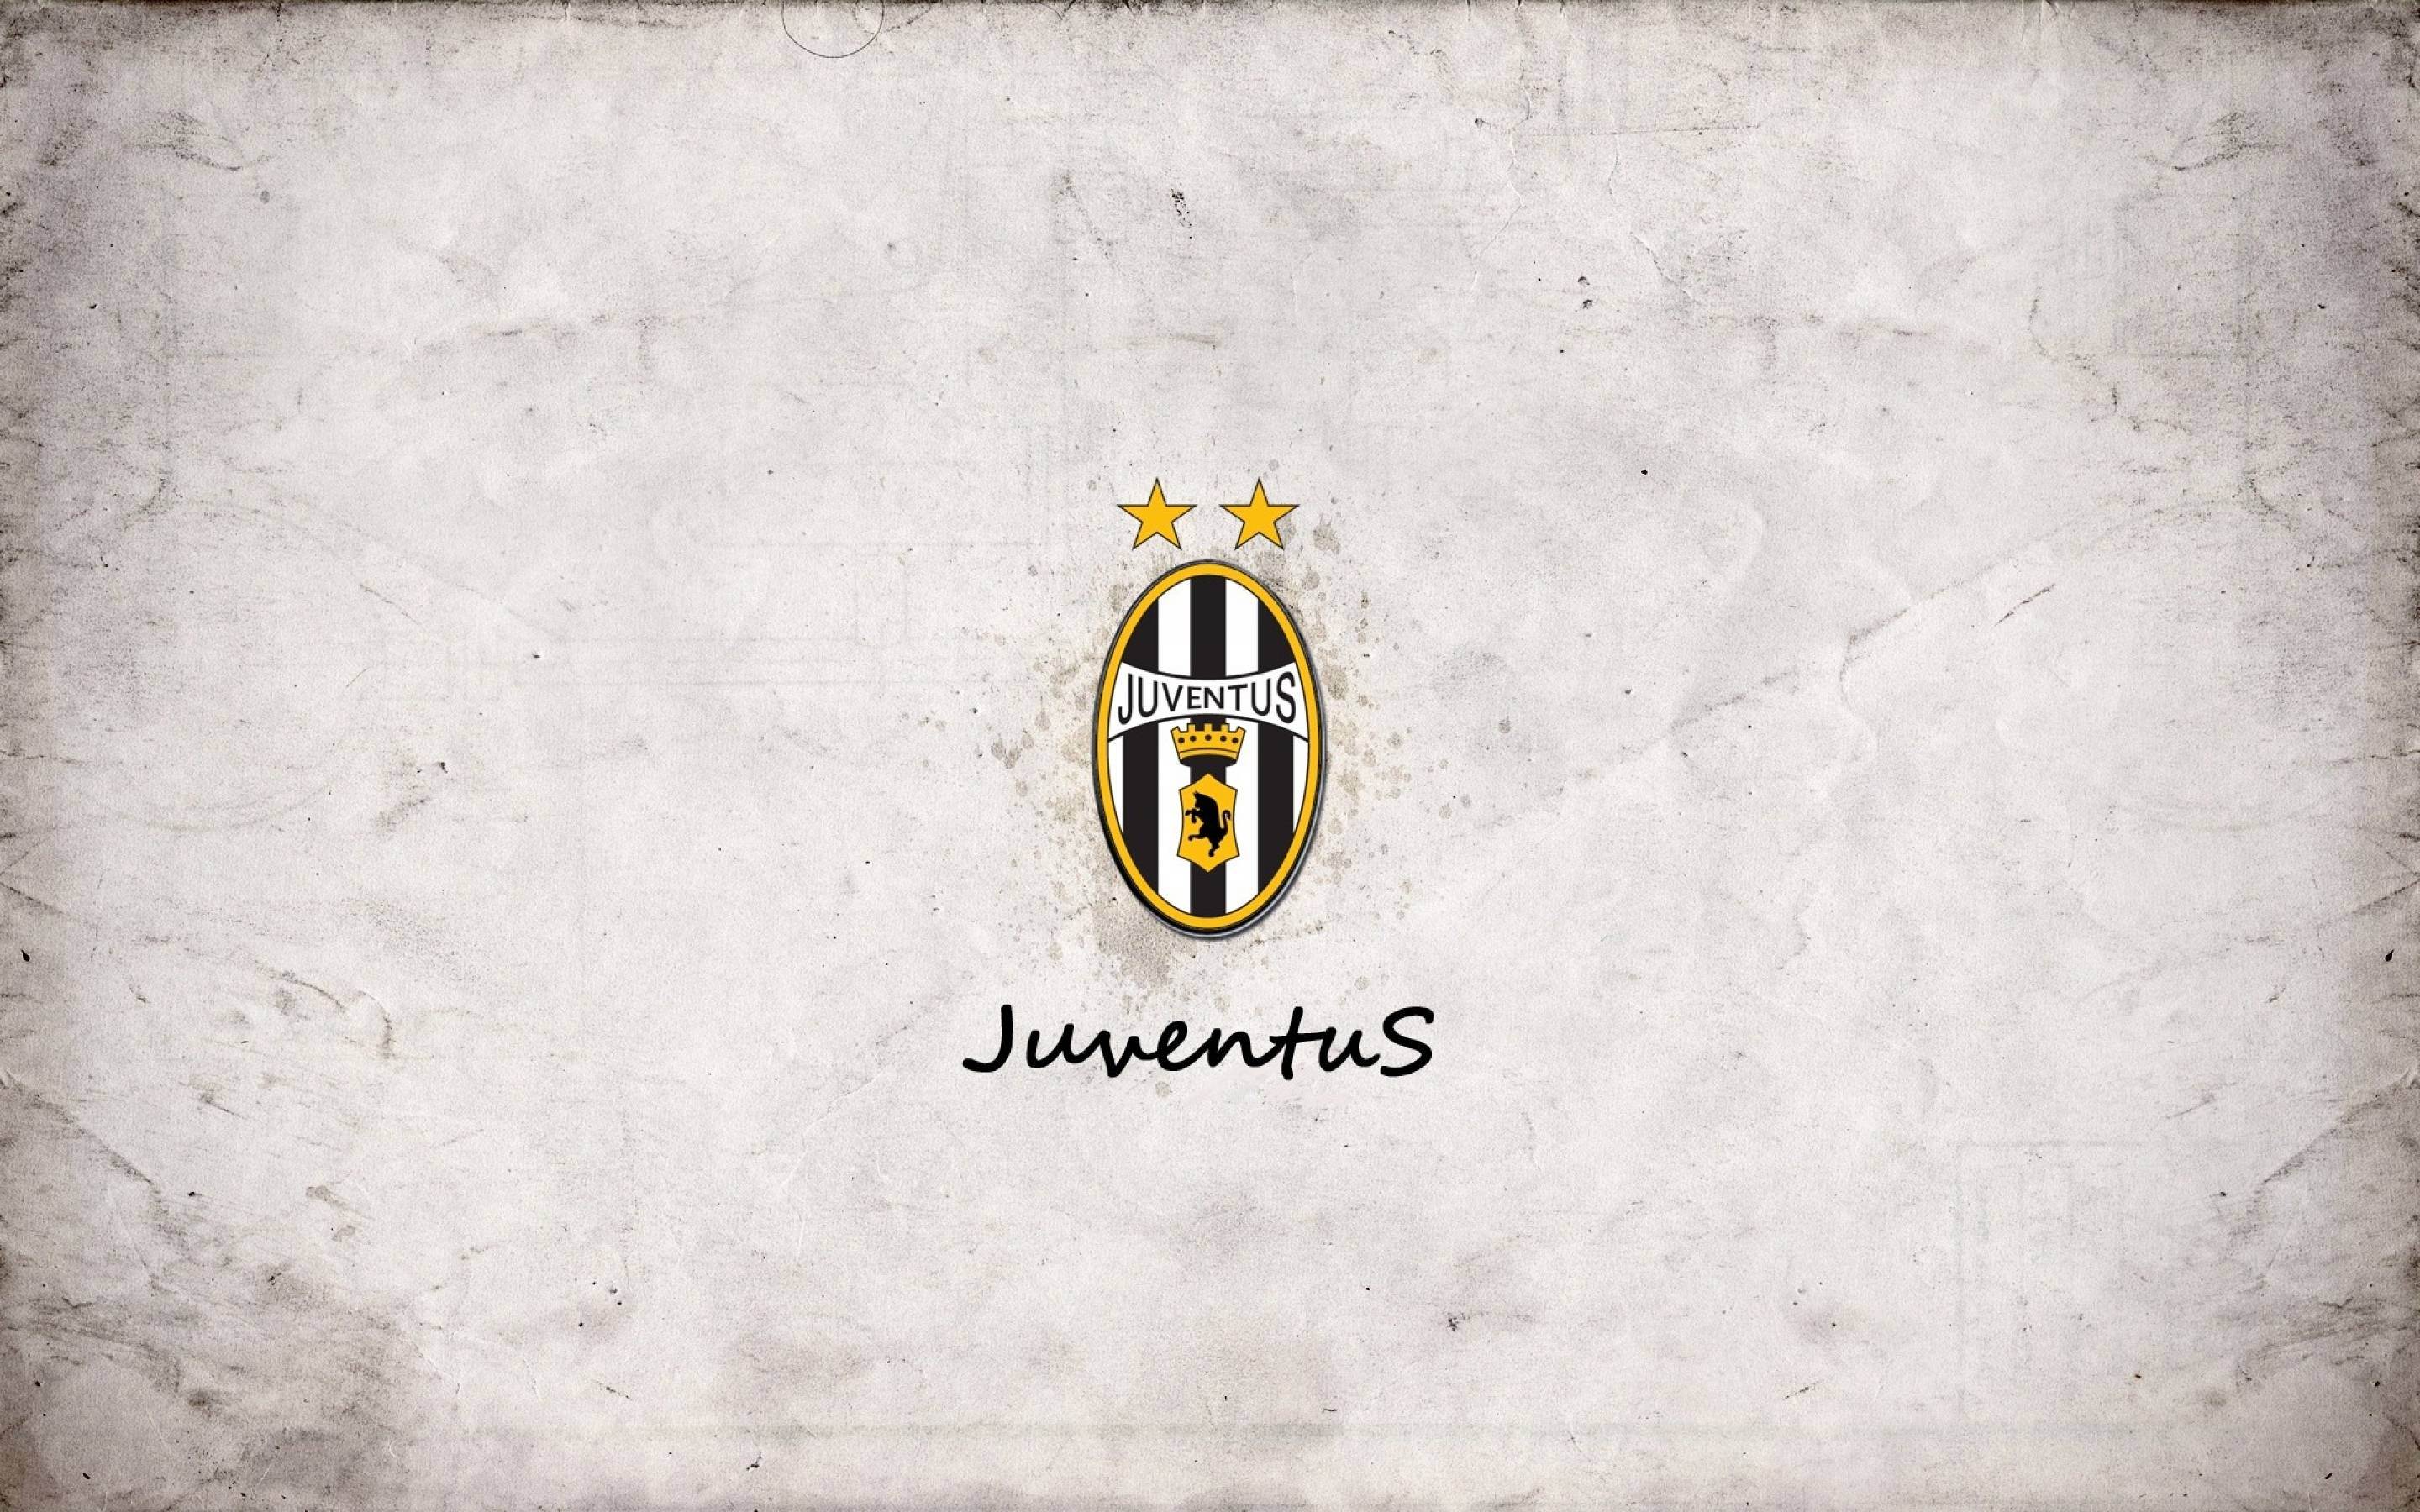 Juventus hd wallpapers wallpaper cave for Fond d ecran juventus pc